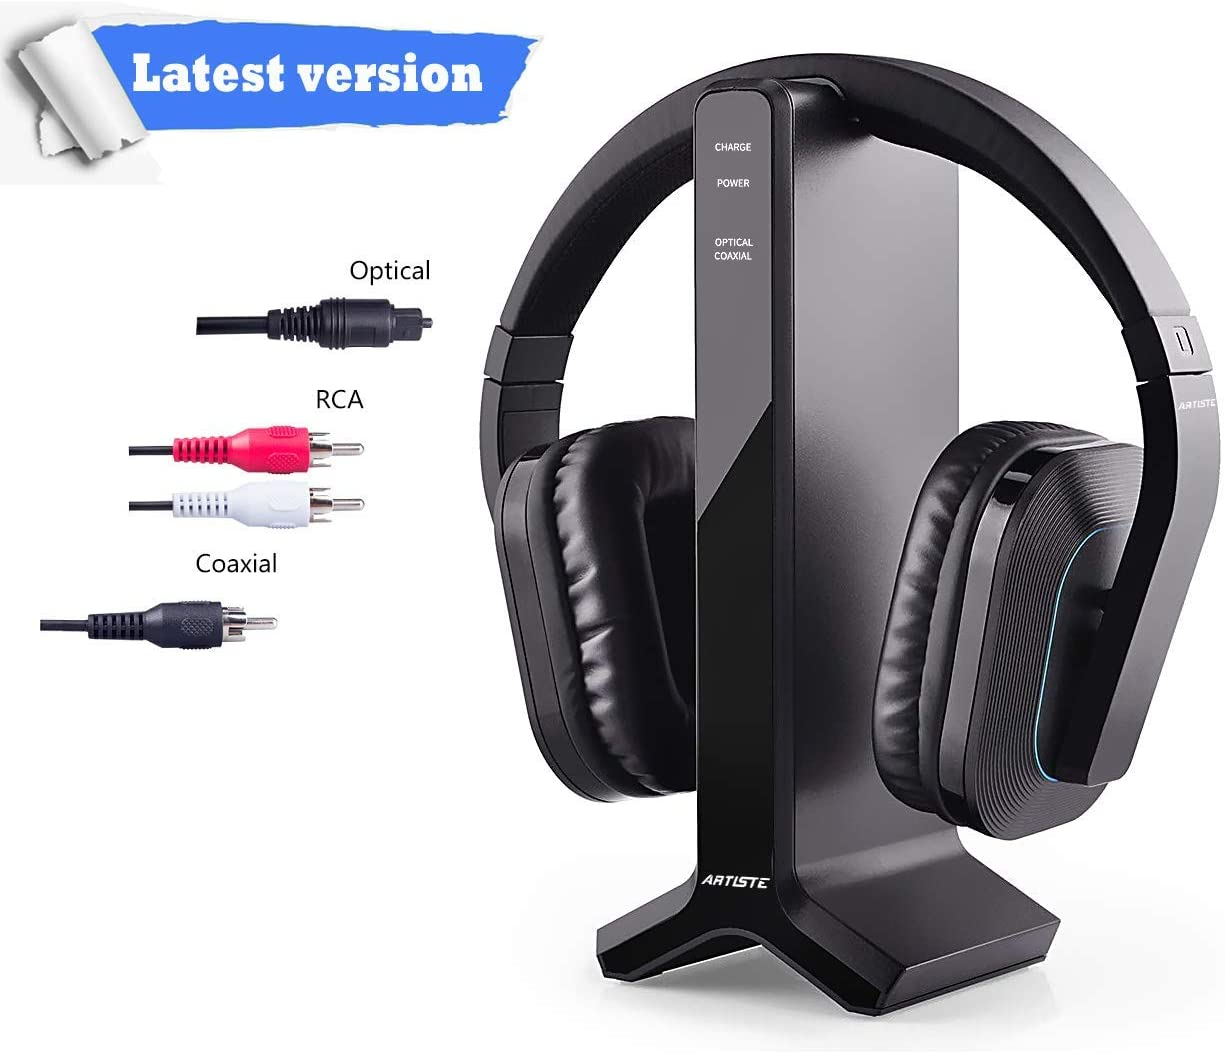 Wireless Headphones for Smart TV Watching with Transmitter Charging Dock, Digital Optical System, High Volume Headset Ideal for Seniors Hearing Impaired, 100 Foot Wireless Range No Audio Delay